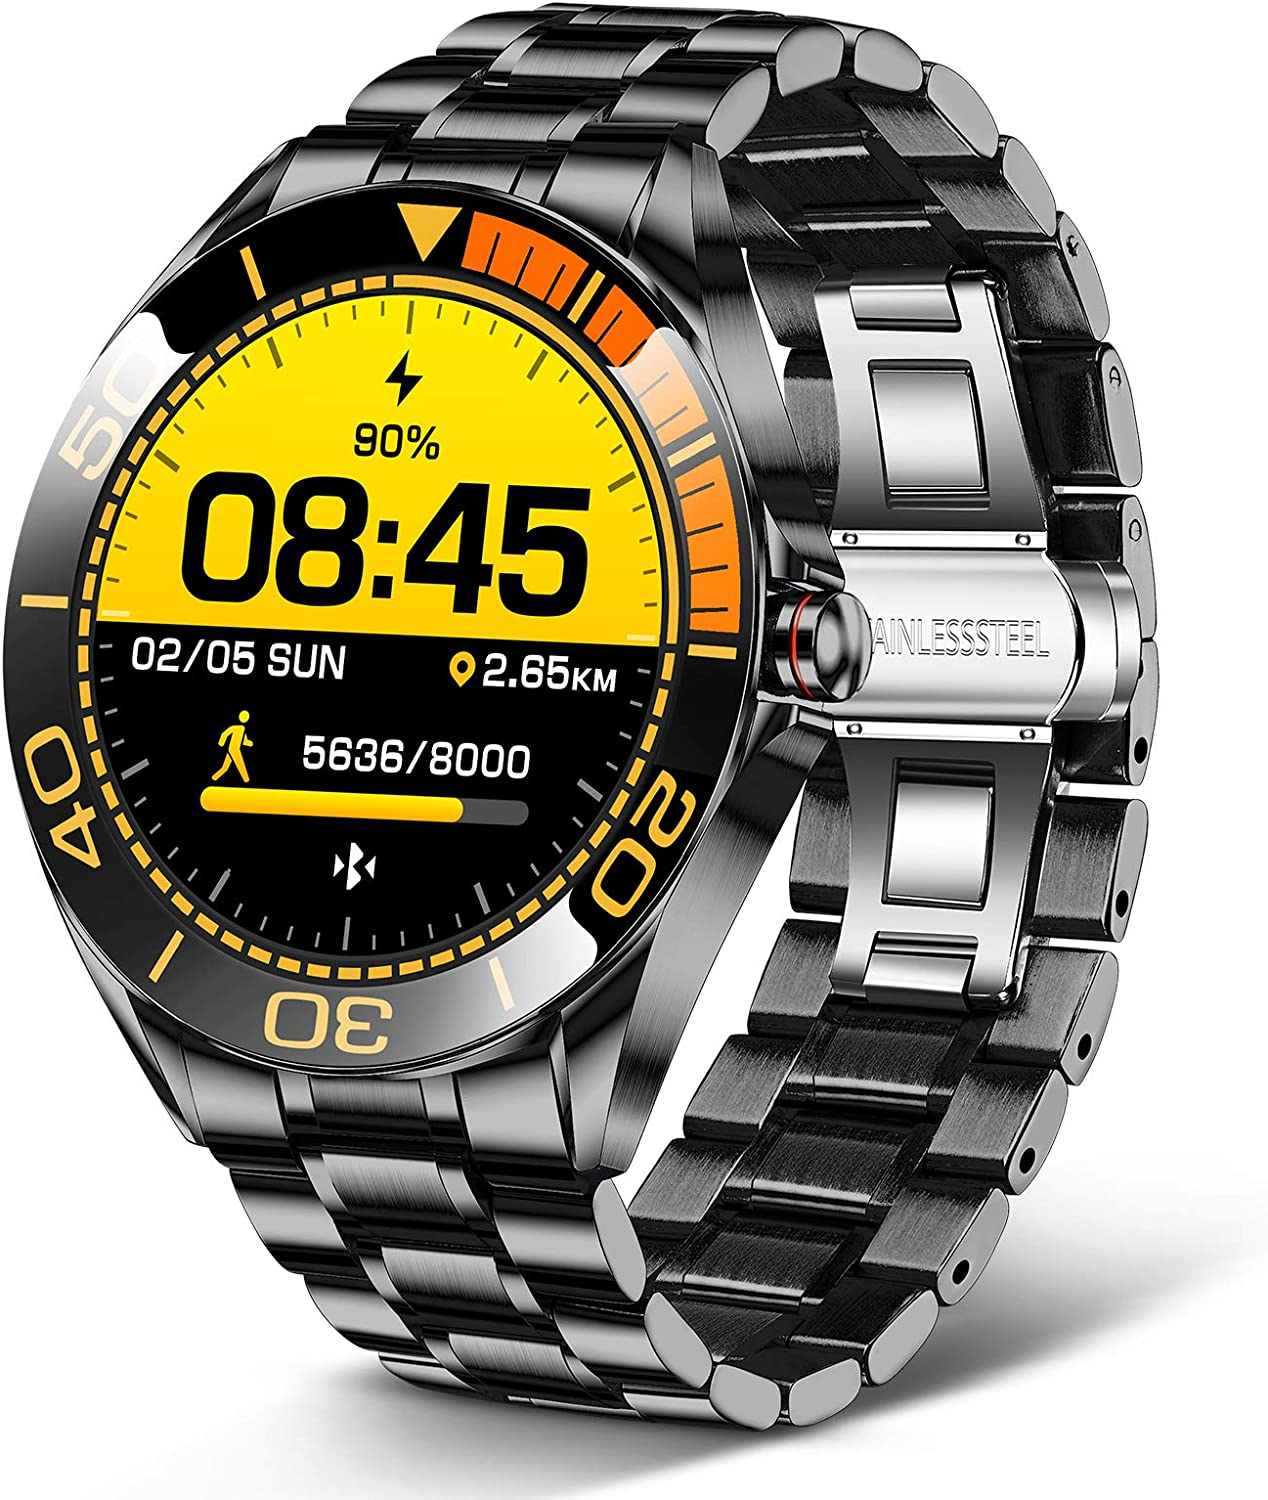 Smart Watch for Men Fitness Limited price sale IP68 Tracker Branded goods with Waterproof